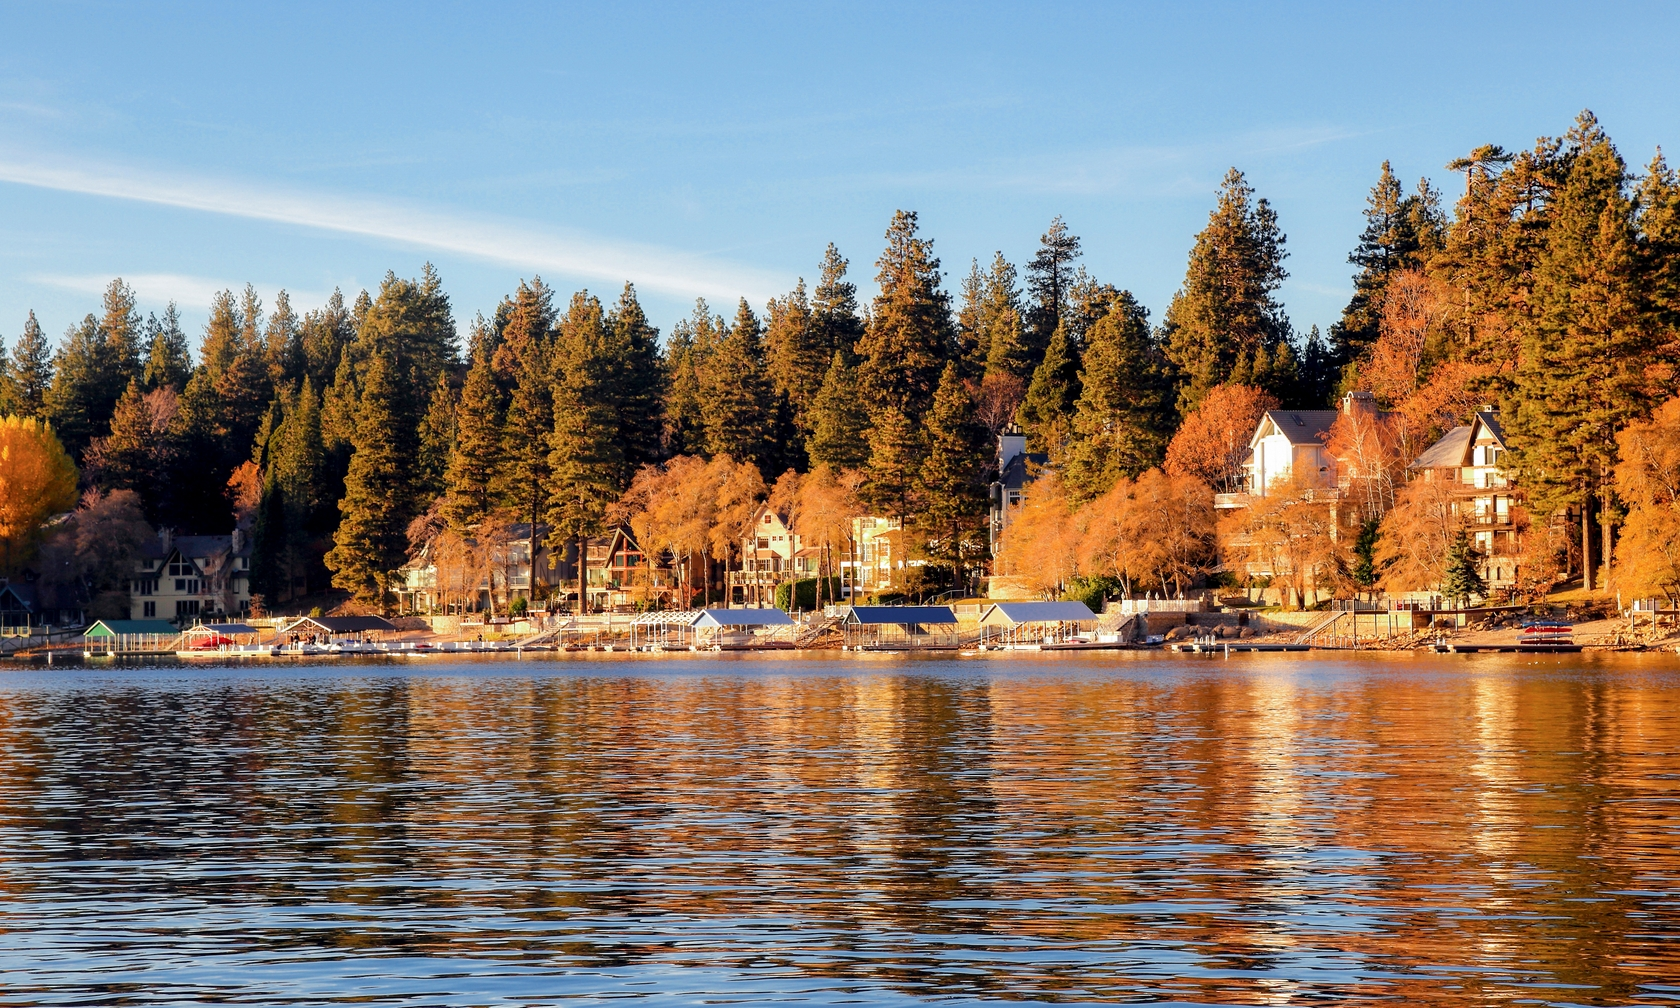 Cabin and house rentals in Lake Arrowhead